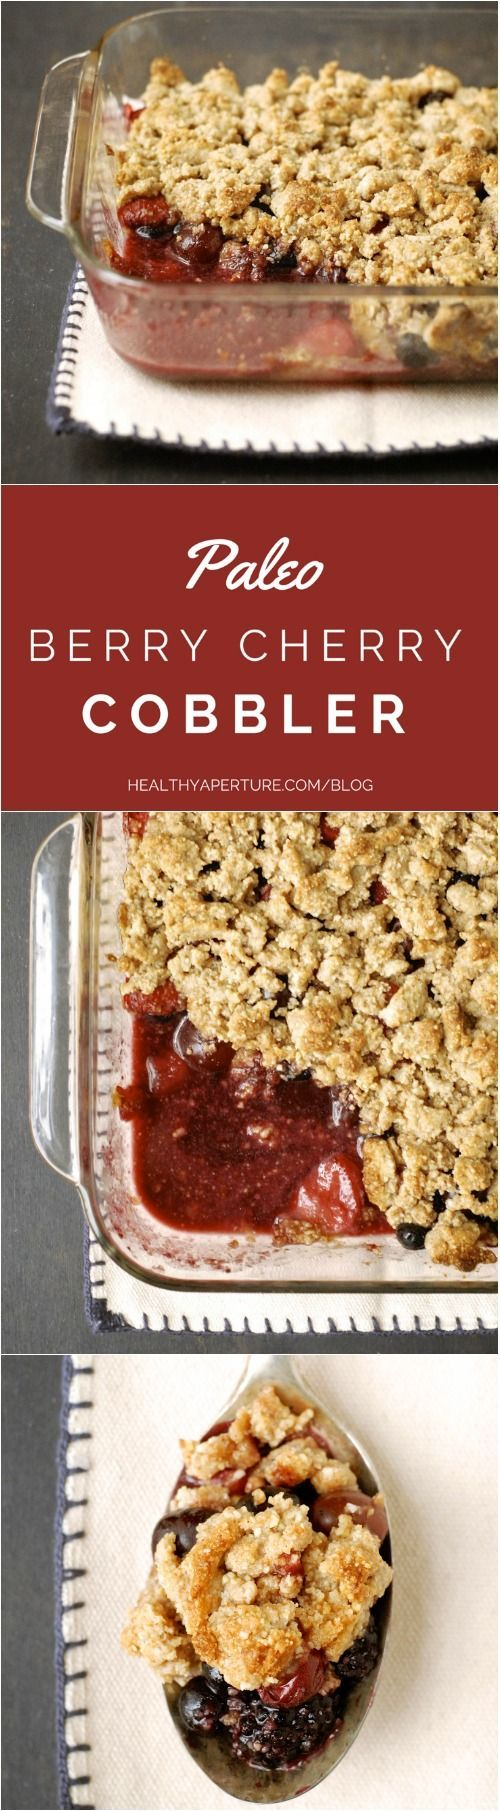 A paleo, grain-free, gluten-free version of the classic berry cobbler -- made with almond flour, maple syrup and coconut sugar. Original recipe calls for frozen fruit blend but fresh summer berries would taste even better! Recipe by /kumquatblog/ on /healthyaperture/